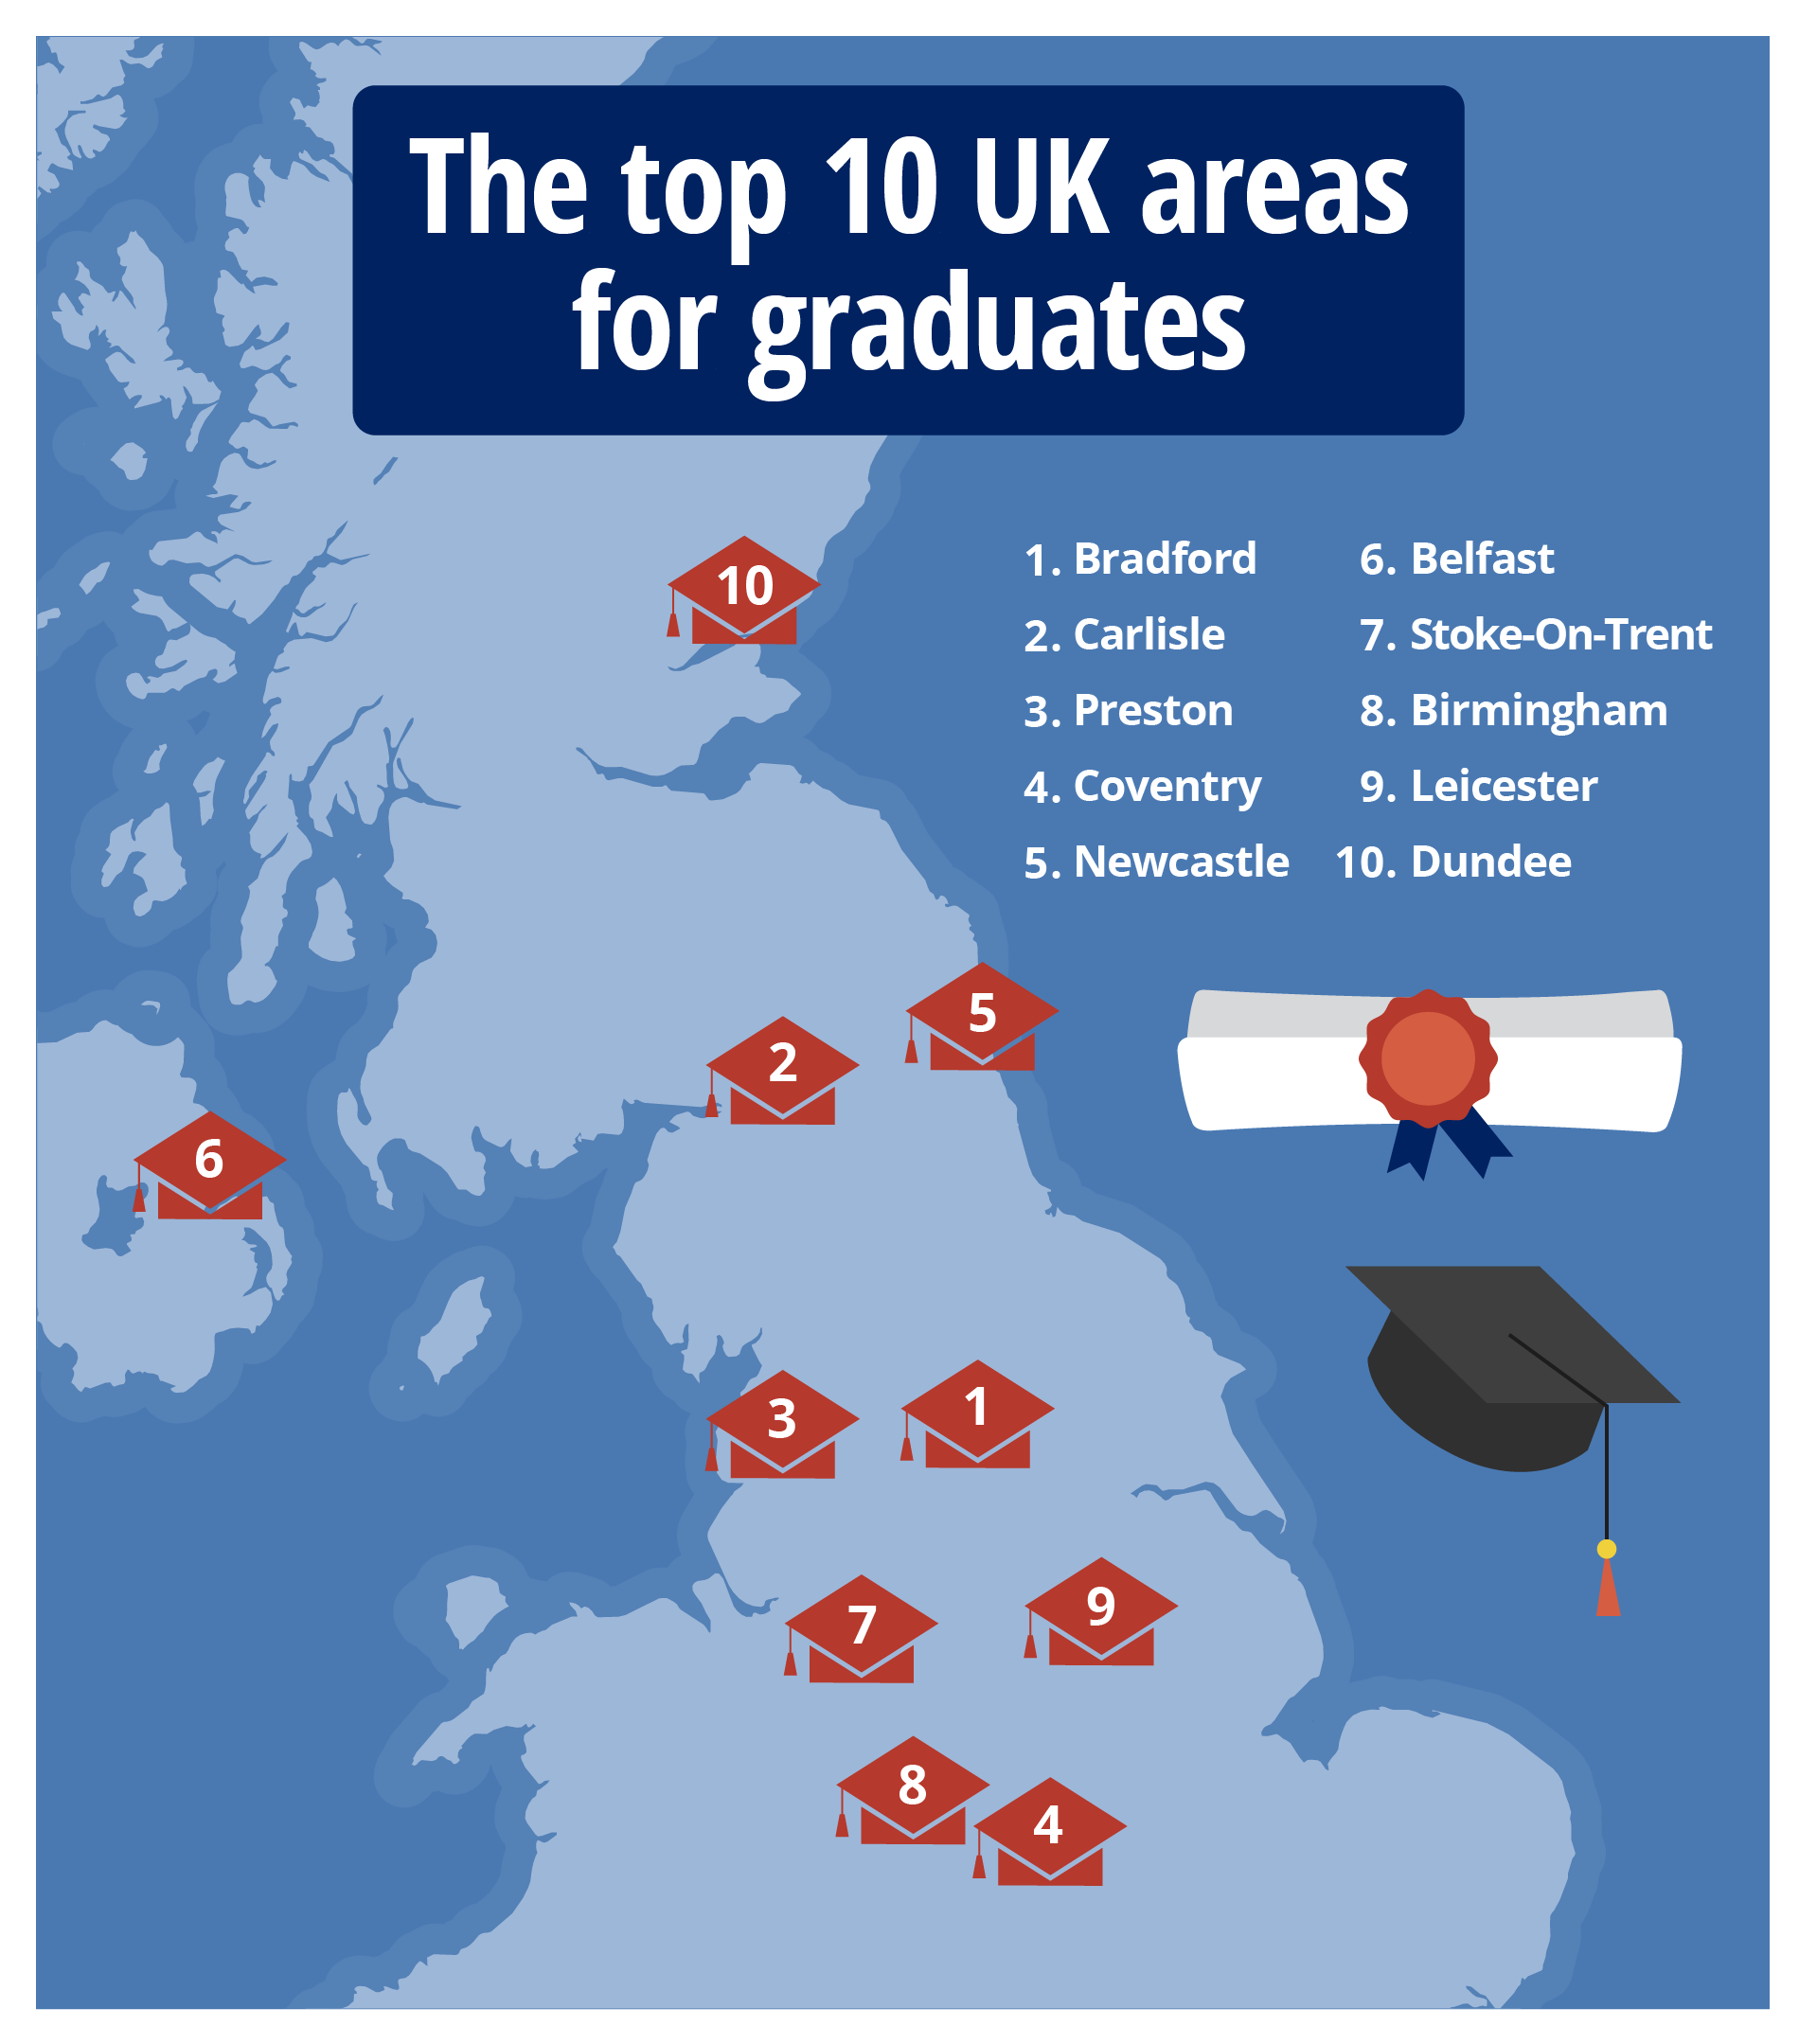 Revealed: Bradford is the best place to live for graduates